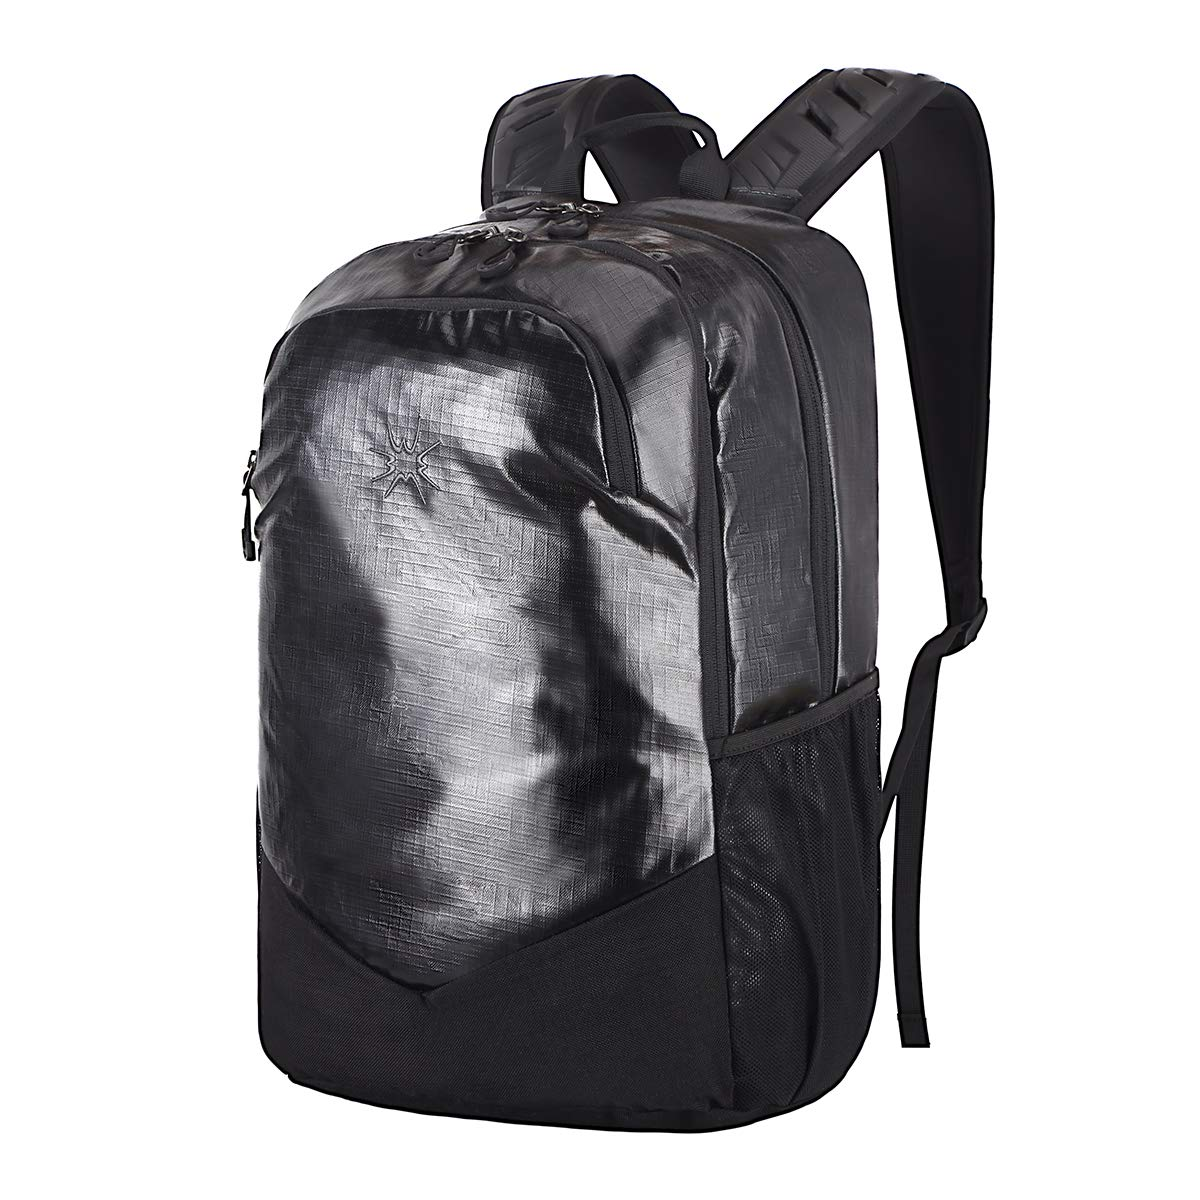 WWWW Laptop Backpack PU 17.3 Inch School Backpack Carry on Book bags Black